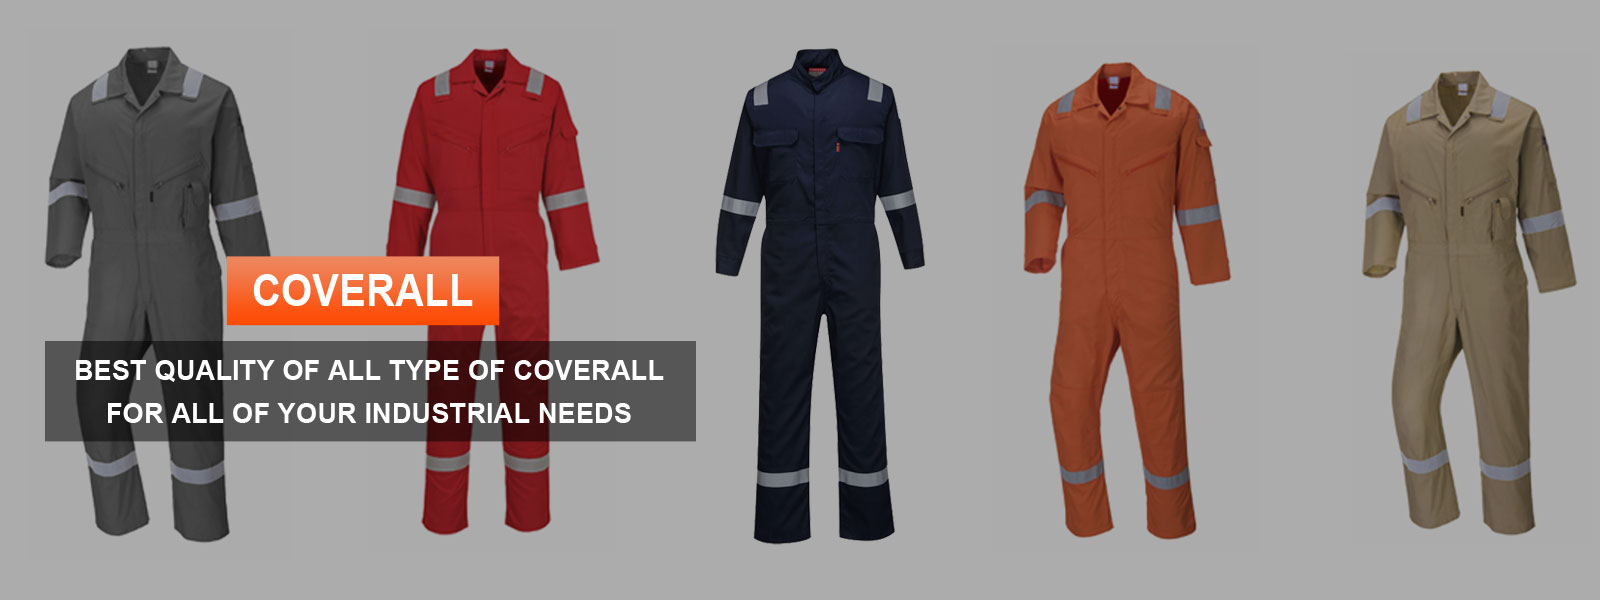 Coverall Manufacturers in Mayotte